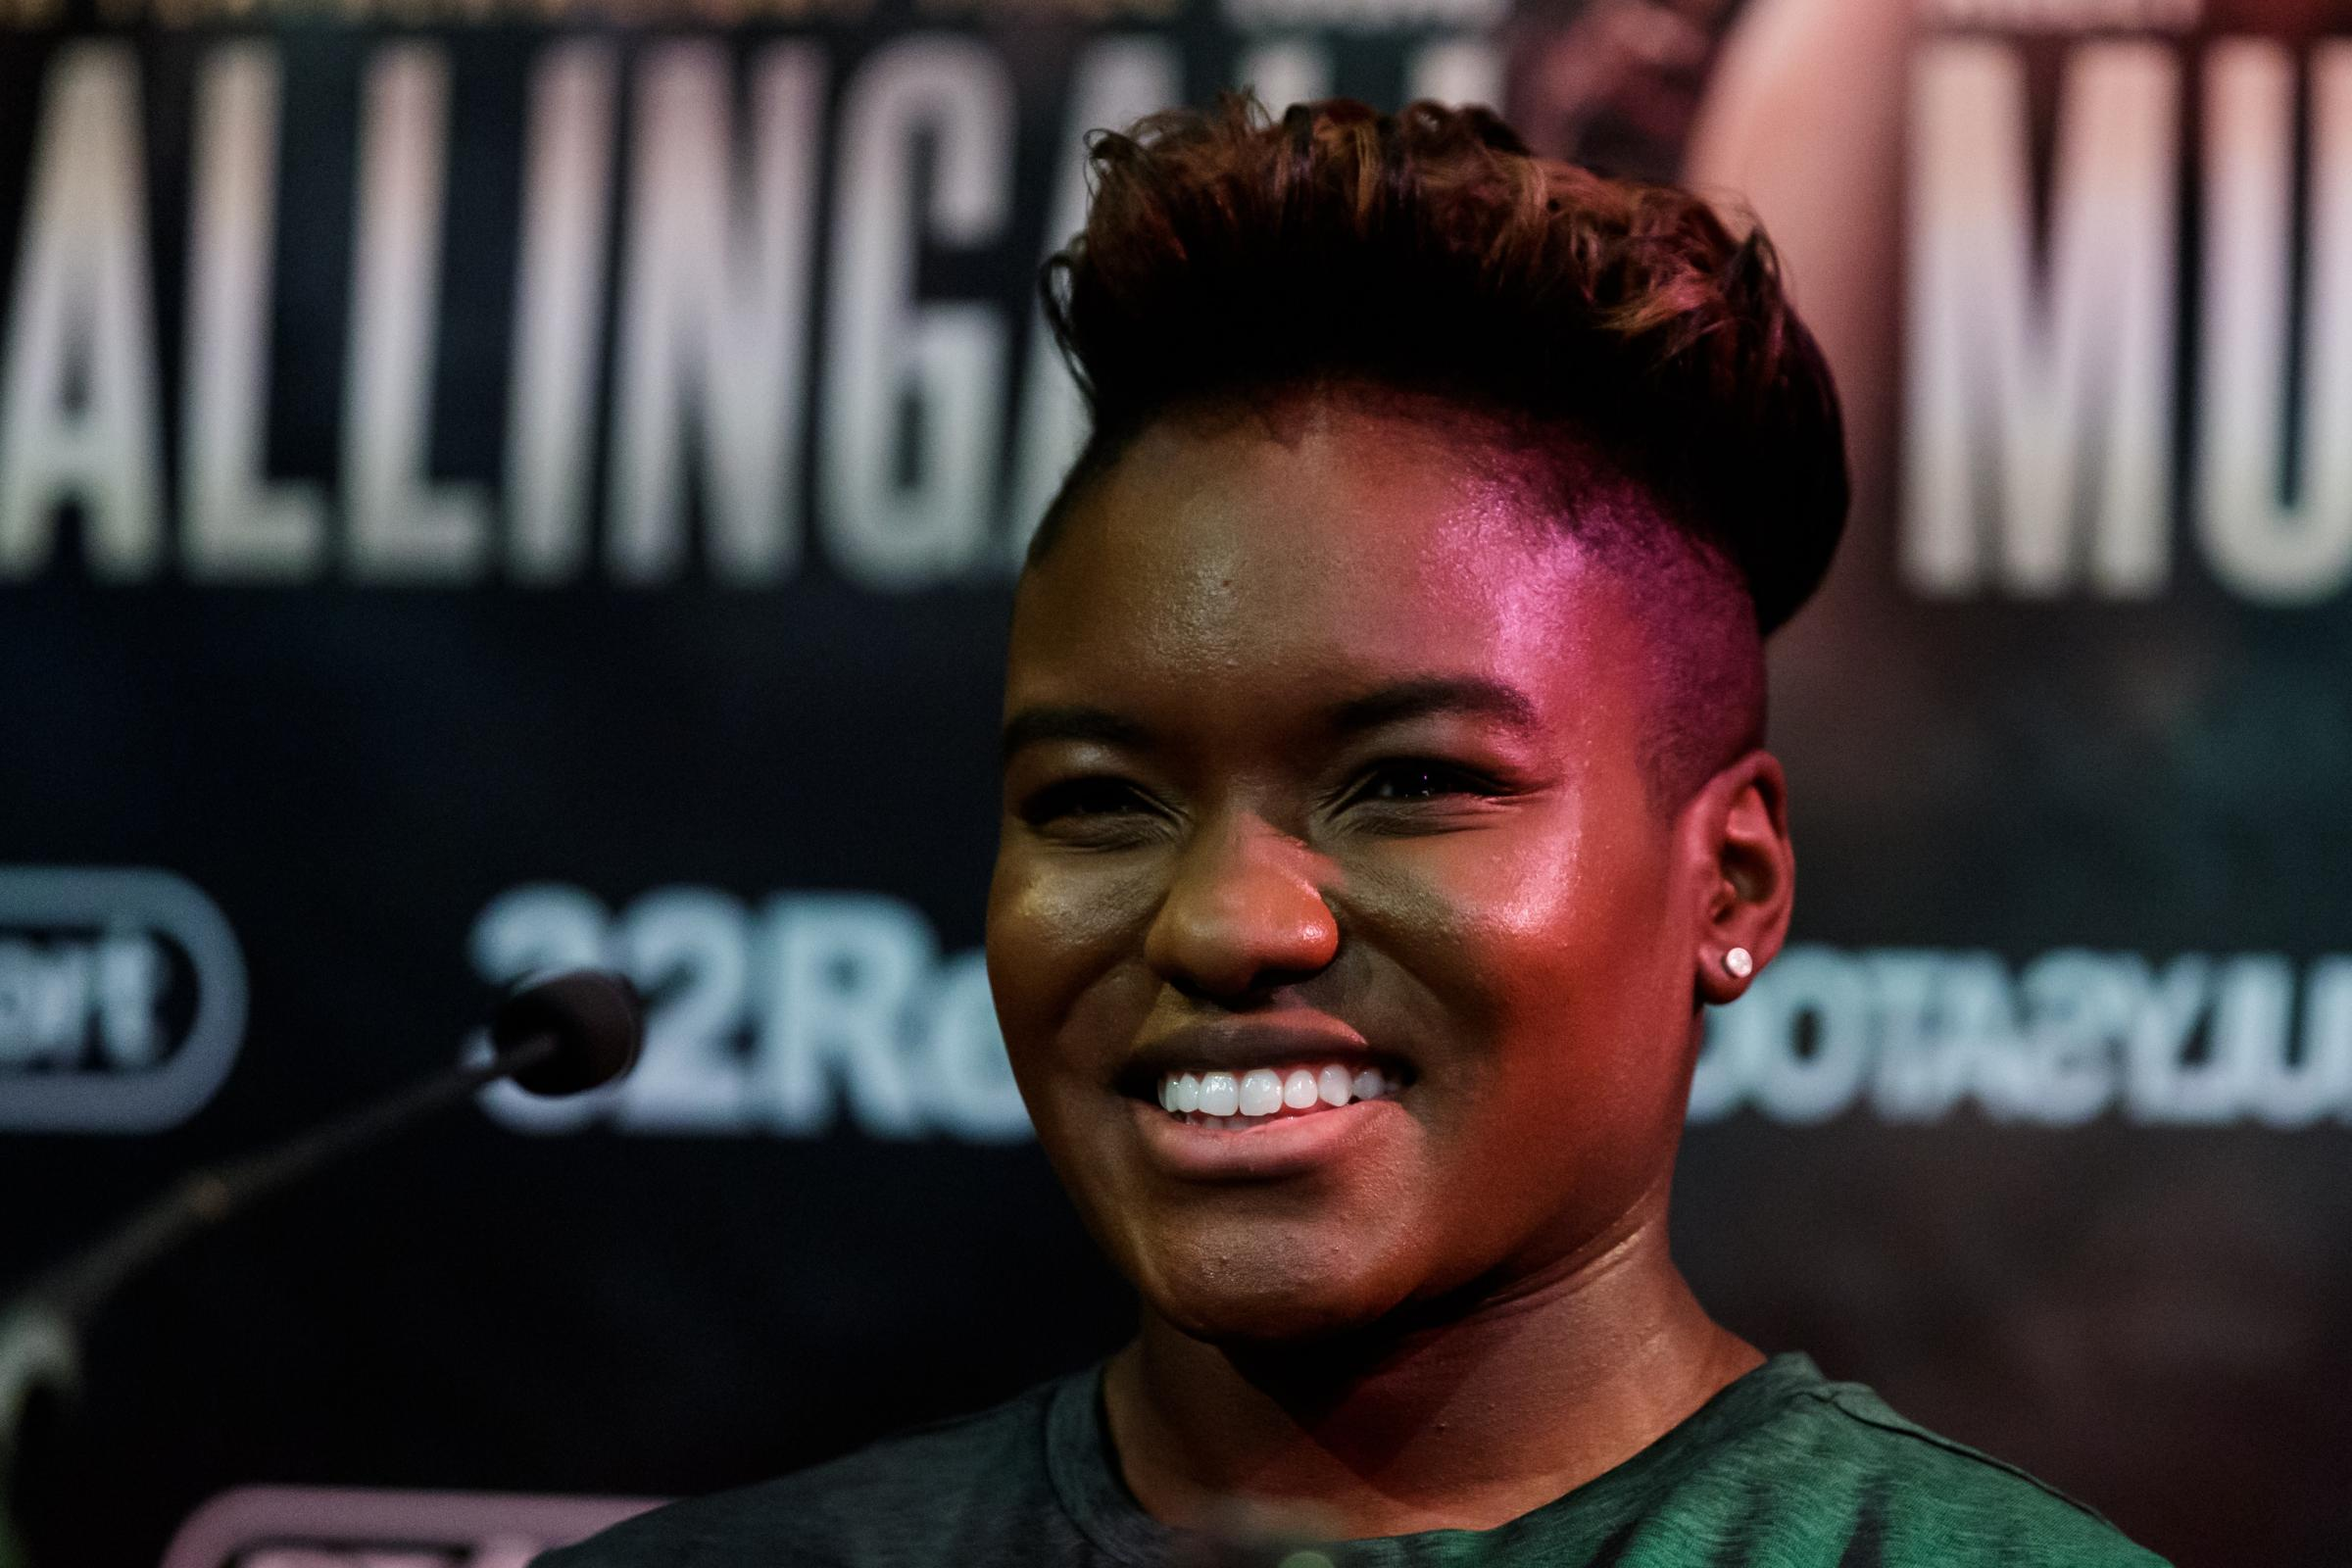 Nicola Adams' first shot at world title glory has been postponed